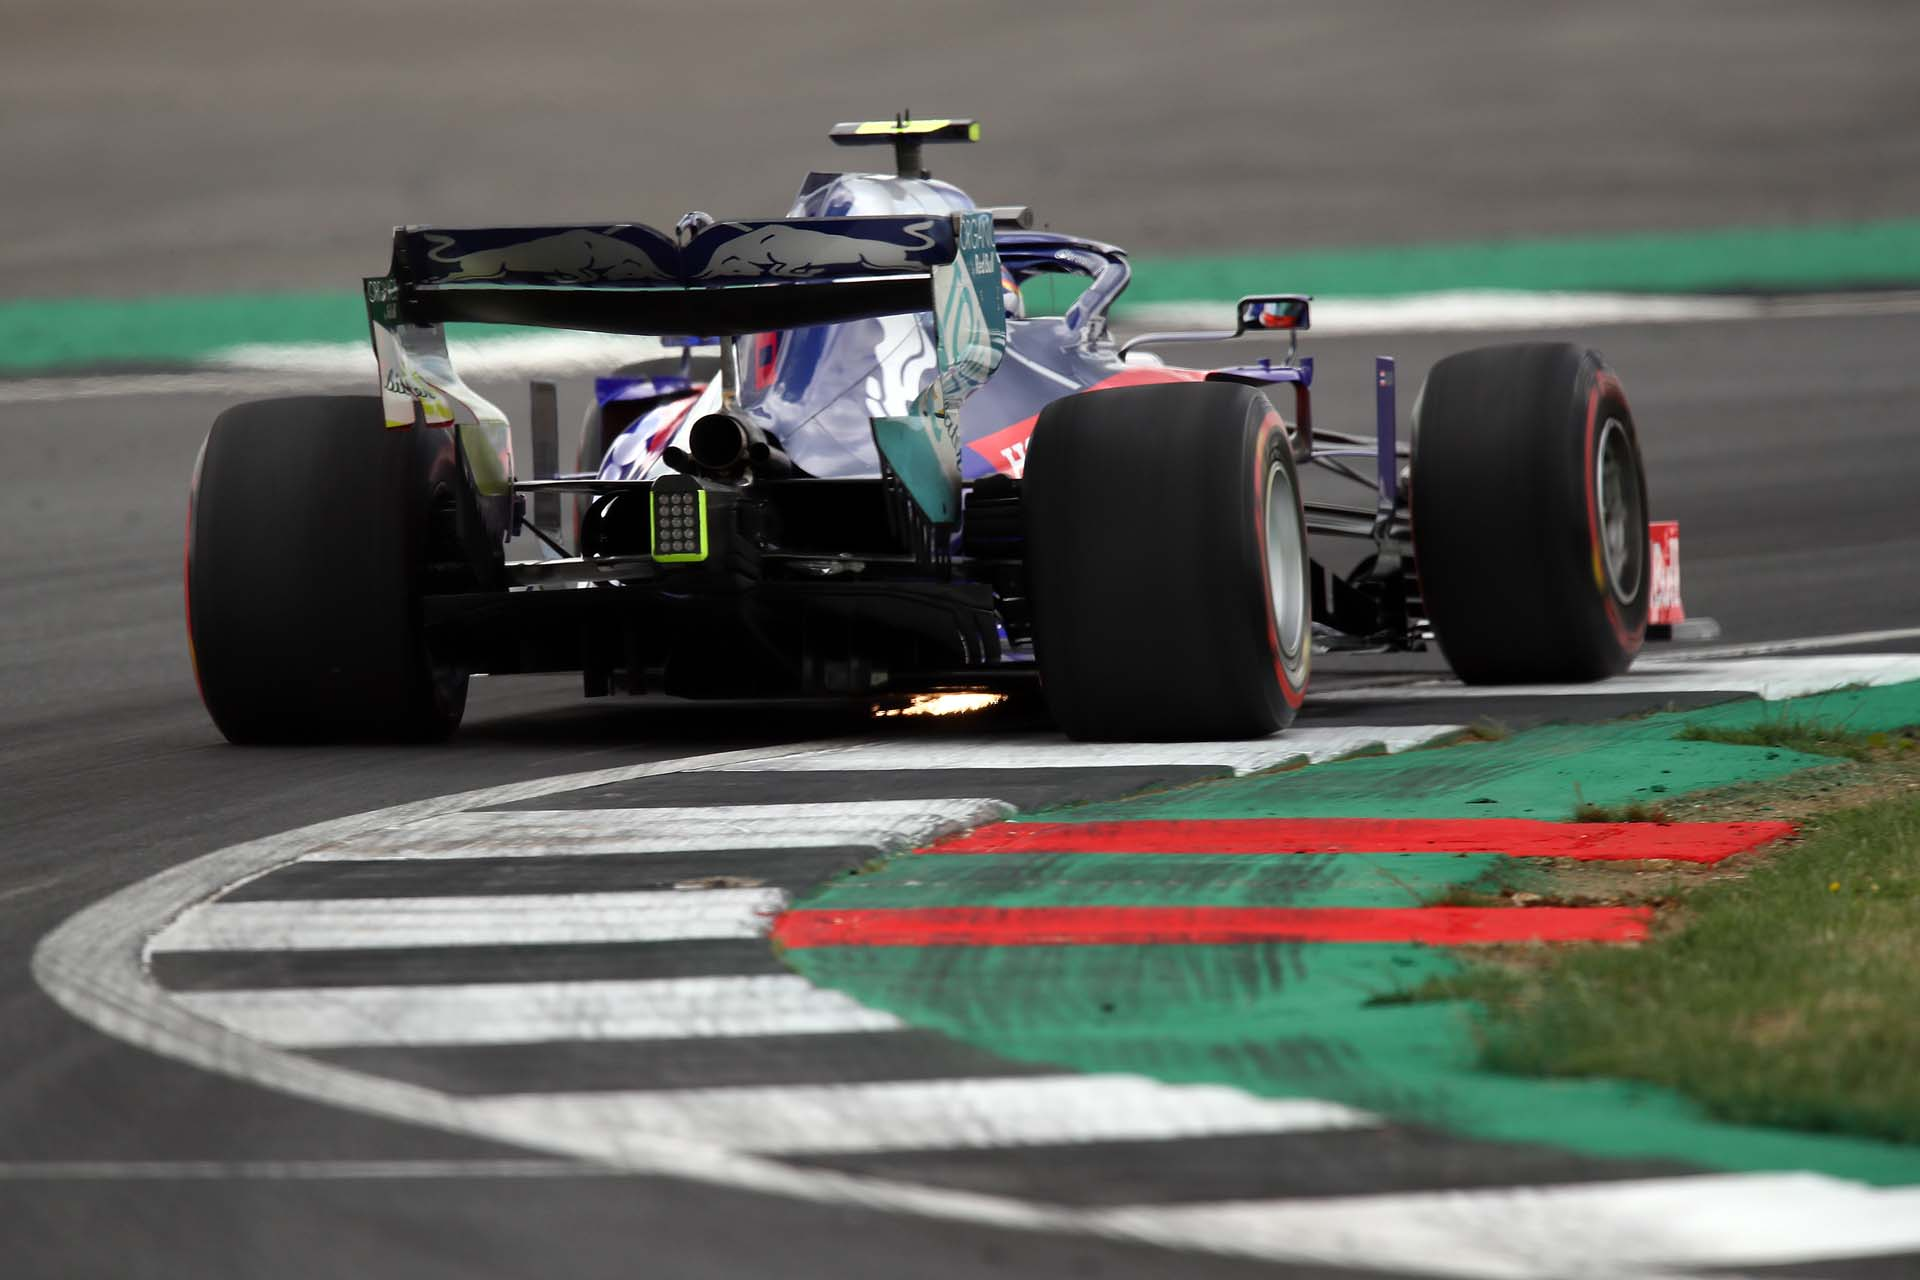 NORTHAMPTON, ENGLAND - JULY 12: Alexander Albon of Thailand driving the (23) Scuderia Toro Rosso STR14 Honda on track during practice for the F1 Grand Prix of Great Britain at Silverstone on July 12, 2019 in Northampton, England. (Photo by Bryn Lennon/Getty Images) // Getty Images / Red Bull Content Pool  // AP-1ZX61T1ND2111 // Usage for editorial use only // Please go to www.redbullcontentpool.com for further information. //